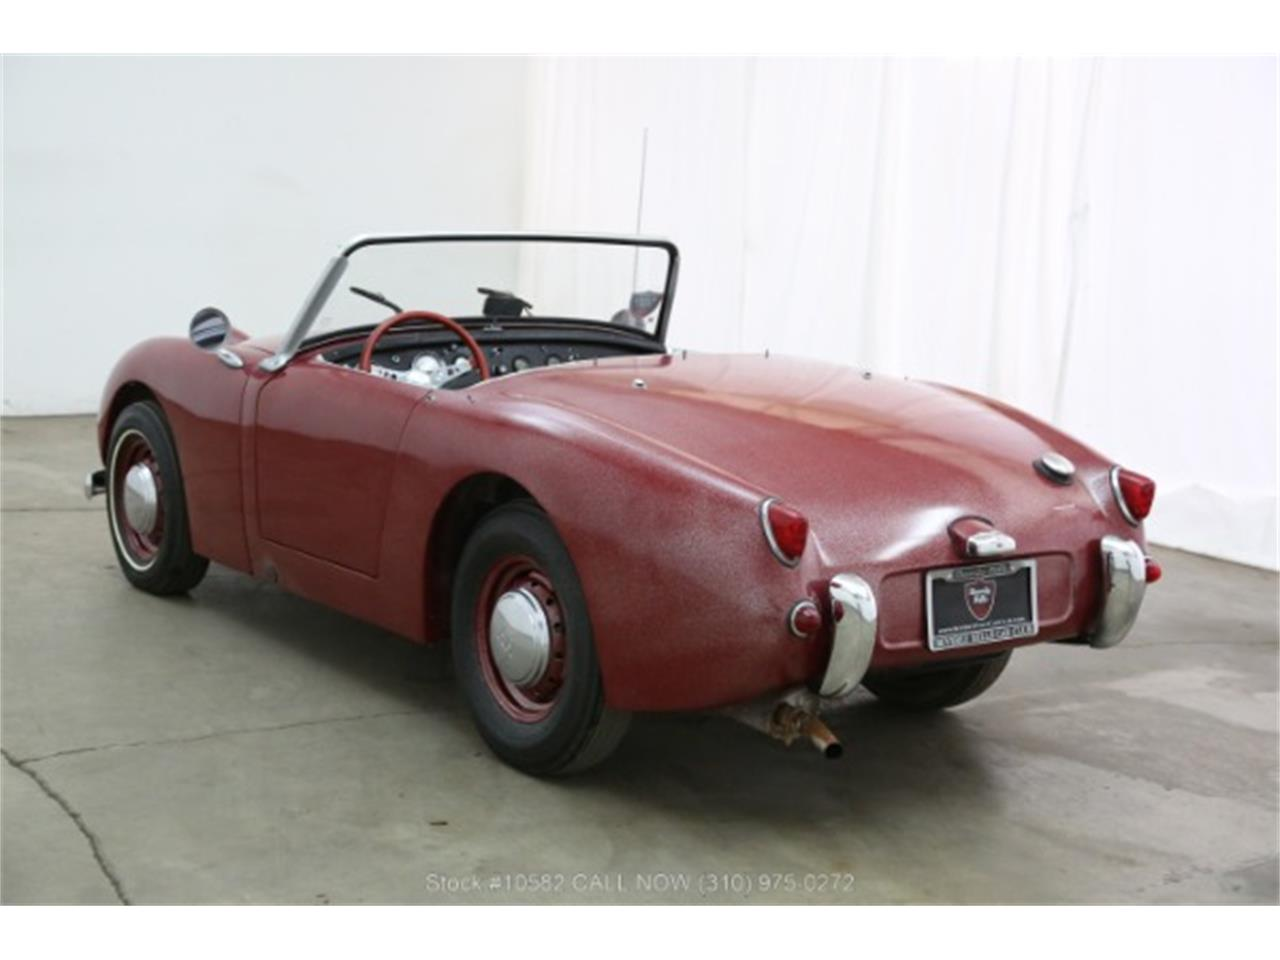 Large Picture of 1960 Austin-Healey Bugeye Sprite located in Beverly Hills California - $9,750.00 - PKL4